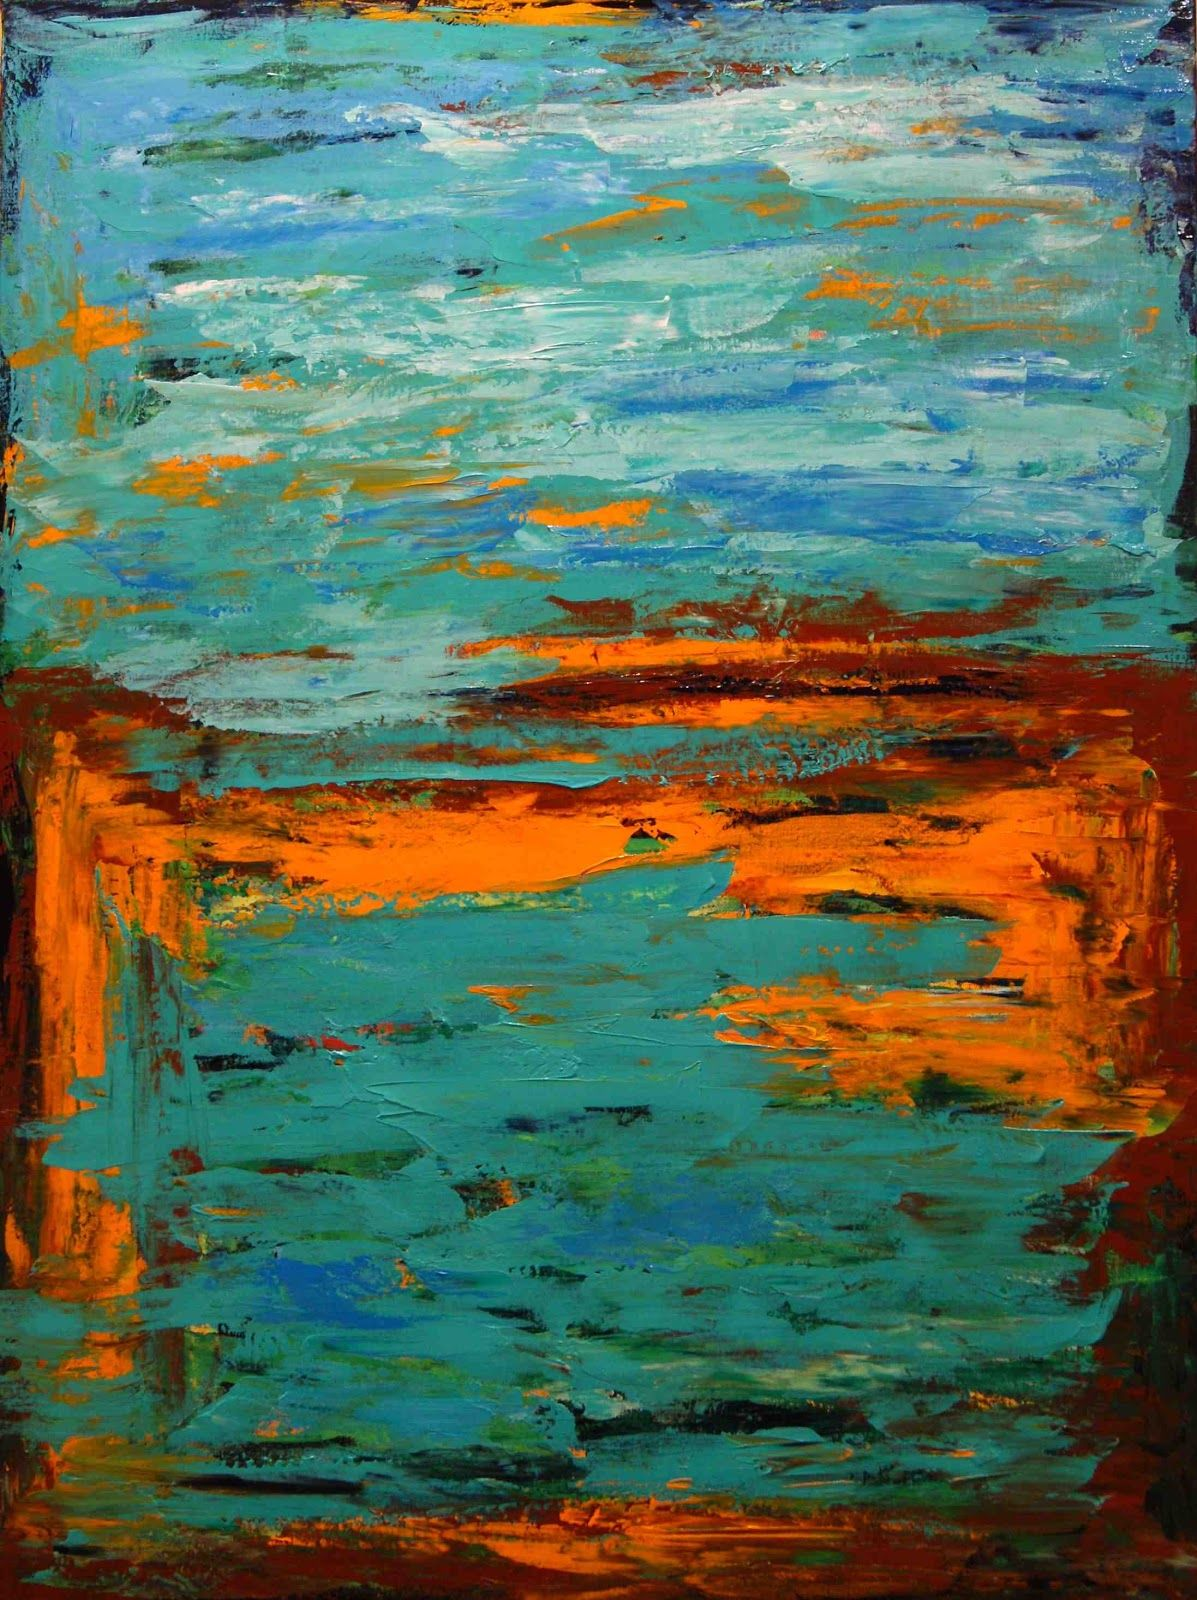 Paintings by theresa paden textured abstract palette for Palette knife painting acrylic